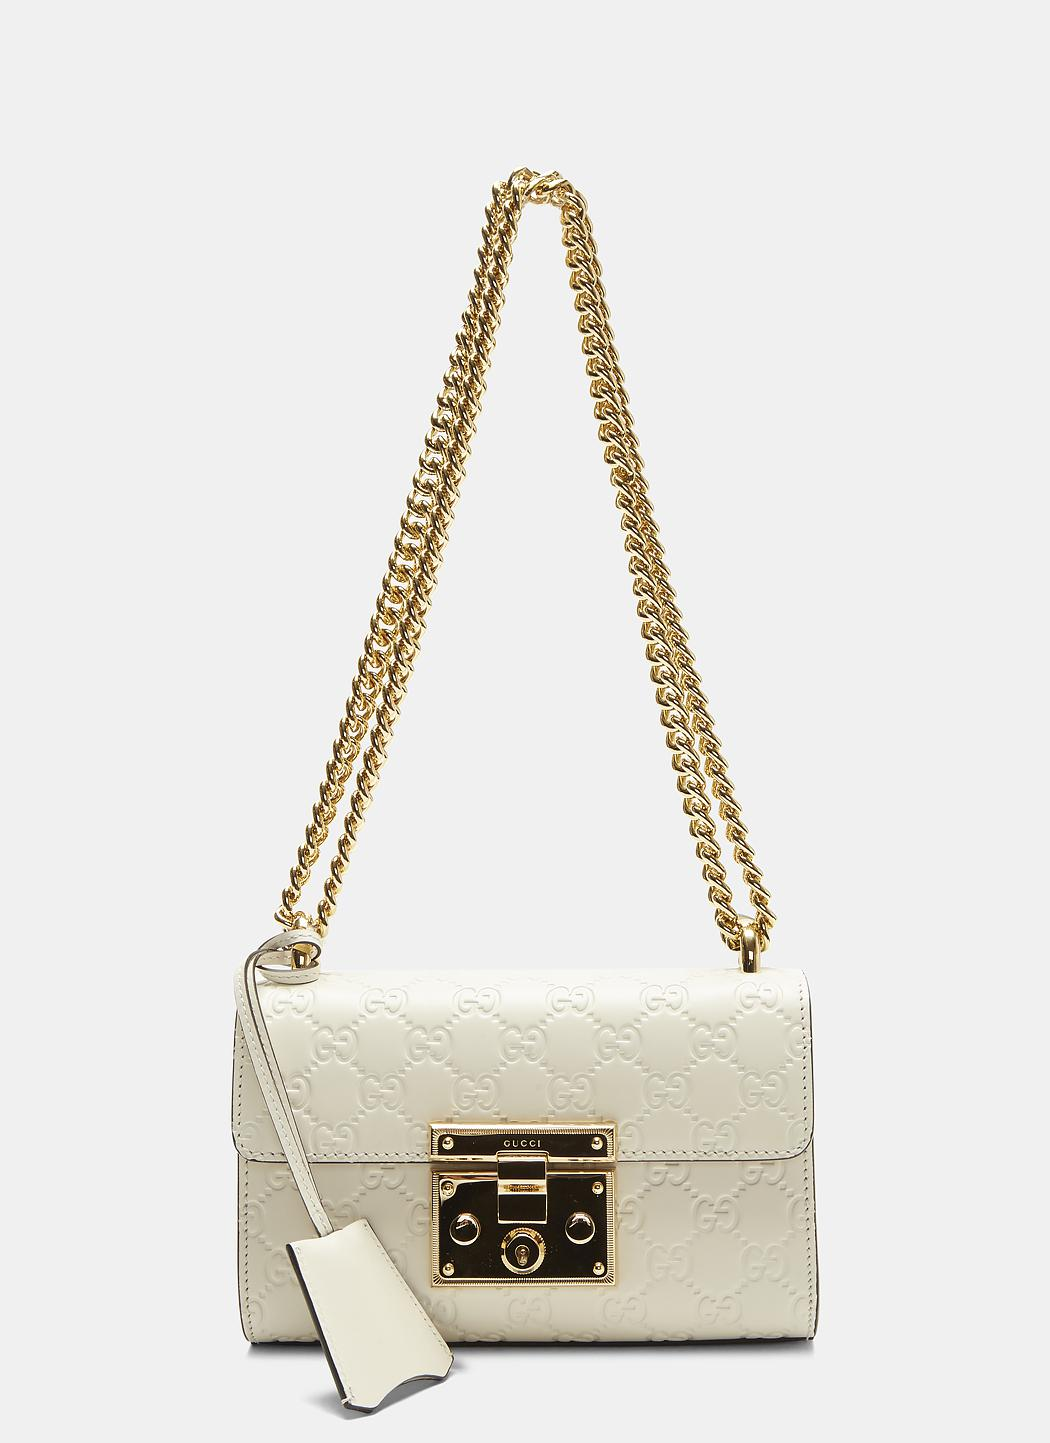 5dc550d1b21c Gucci Padlock Small Shoulder Bag In White in White - Lyst